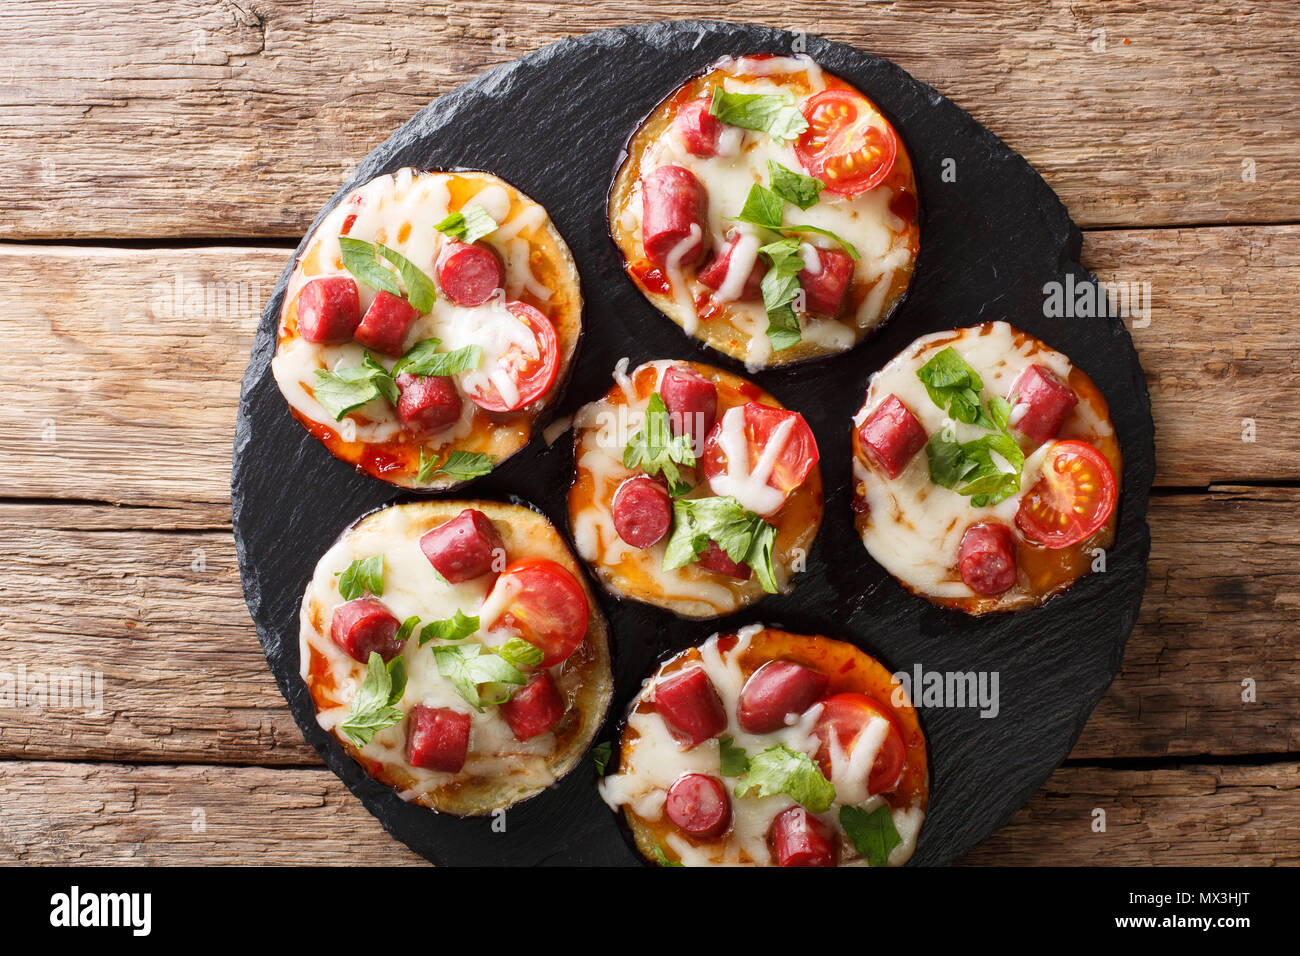 Pizza from baked eggplants with mozzarella, tomatoes, sausages and greens close-up on the table. Horizontal top view from above Stock Photo